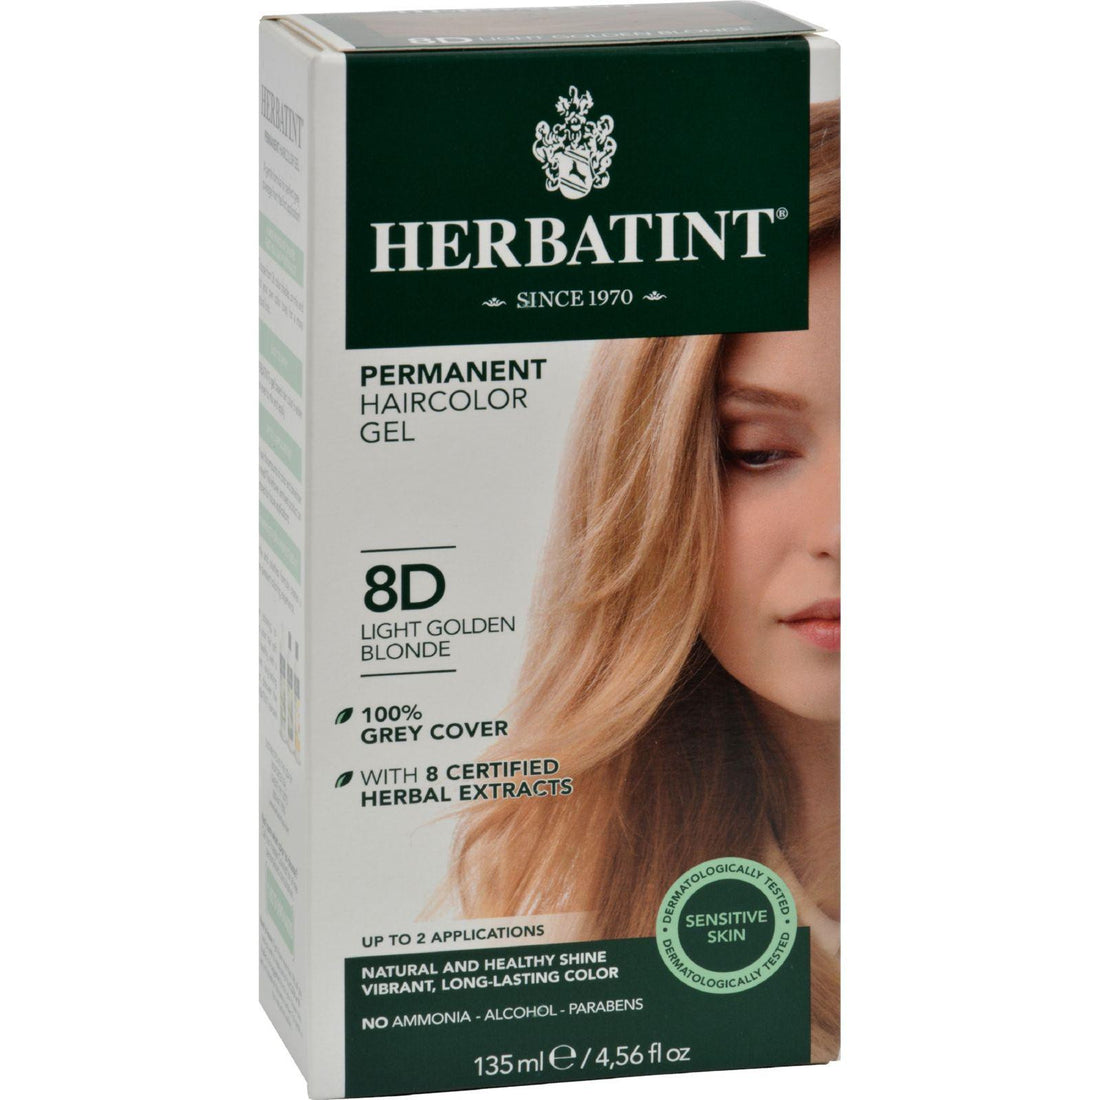 Mother Mantis: Herbatint Permanent Herbal Haircolour Gel 8d Light Golden Blonde - 135 Ml Herbatint